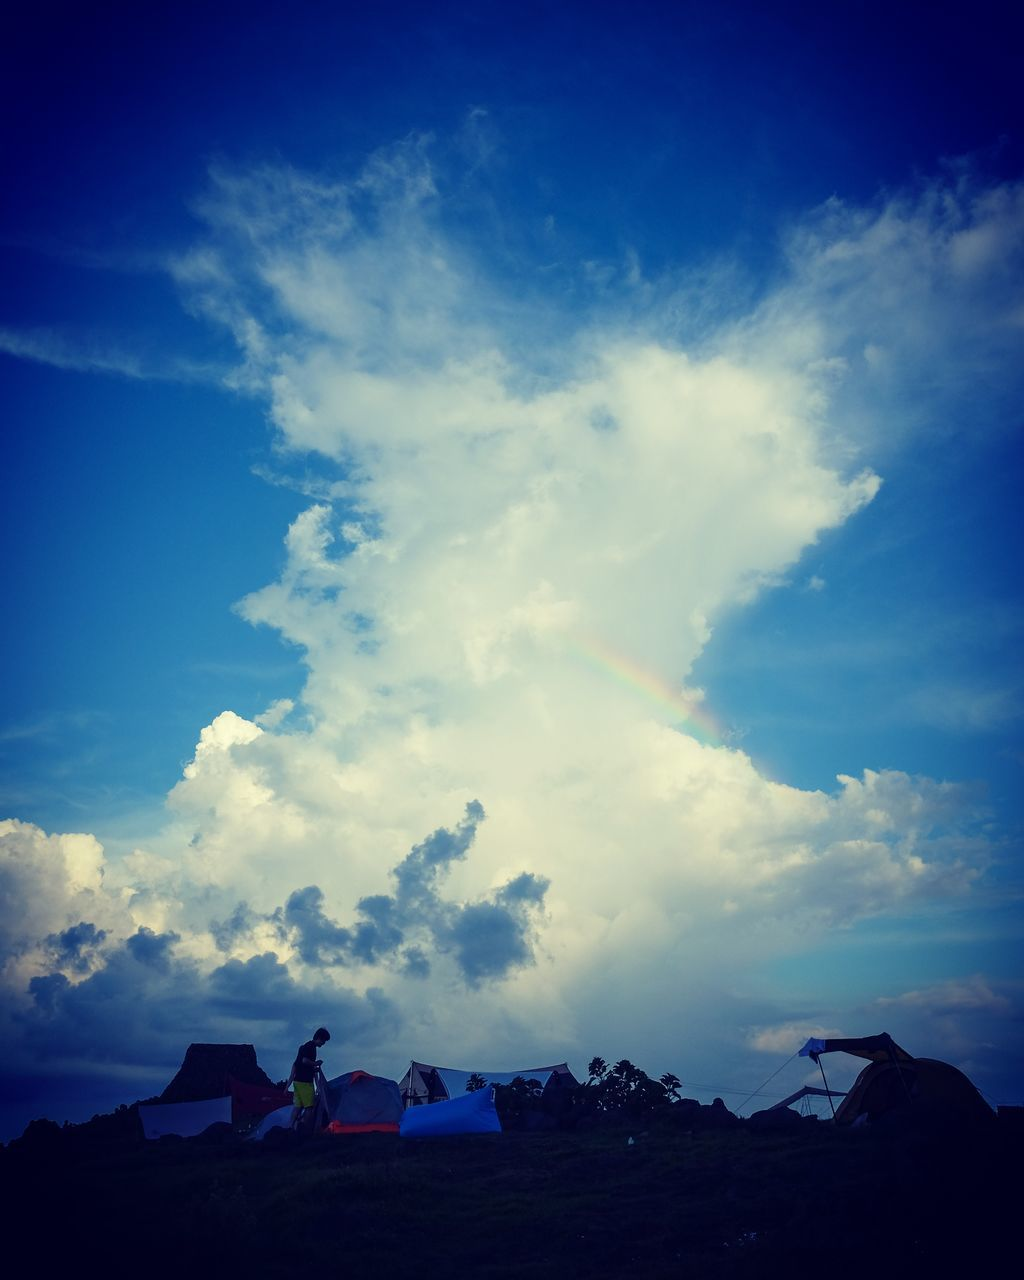 sky, cloud - sky, blue, outdoors, nature, beauty in nature, architecture, day, tent, building exterior, scenics, no people